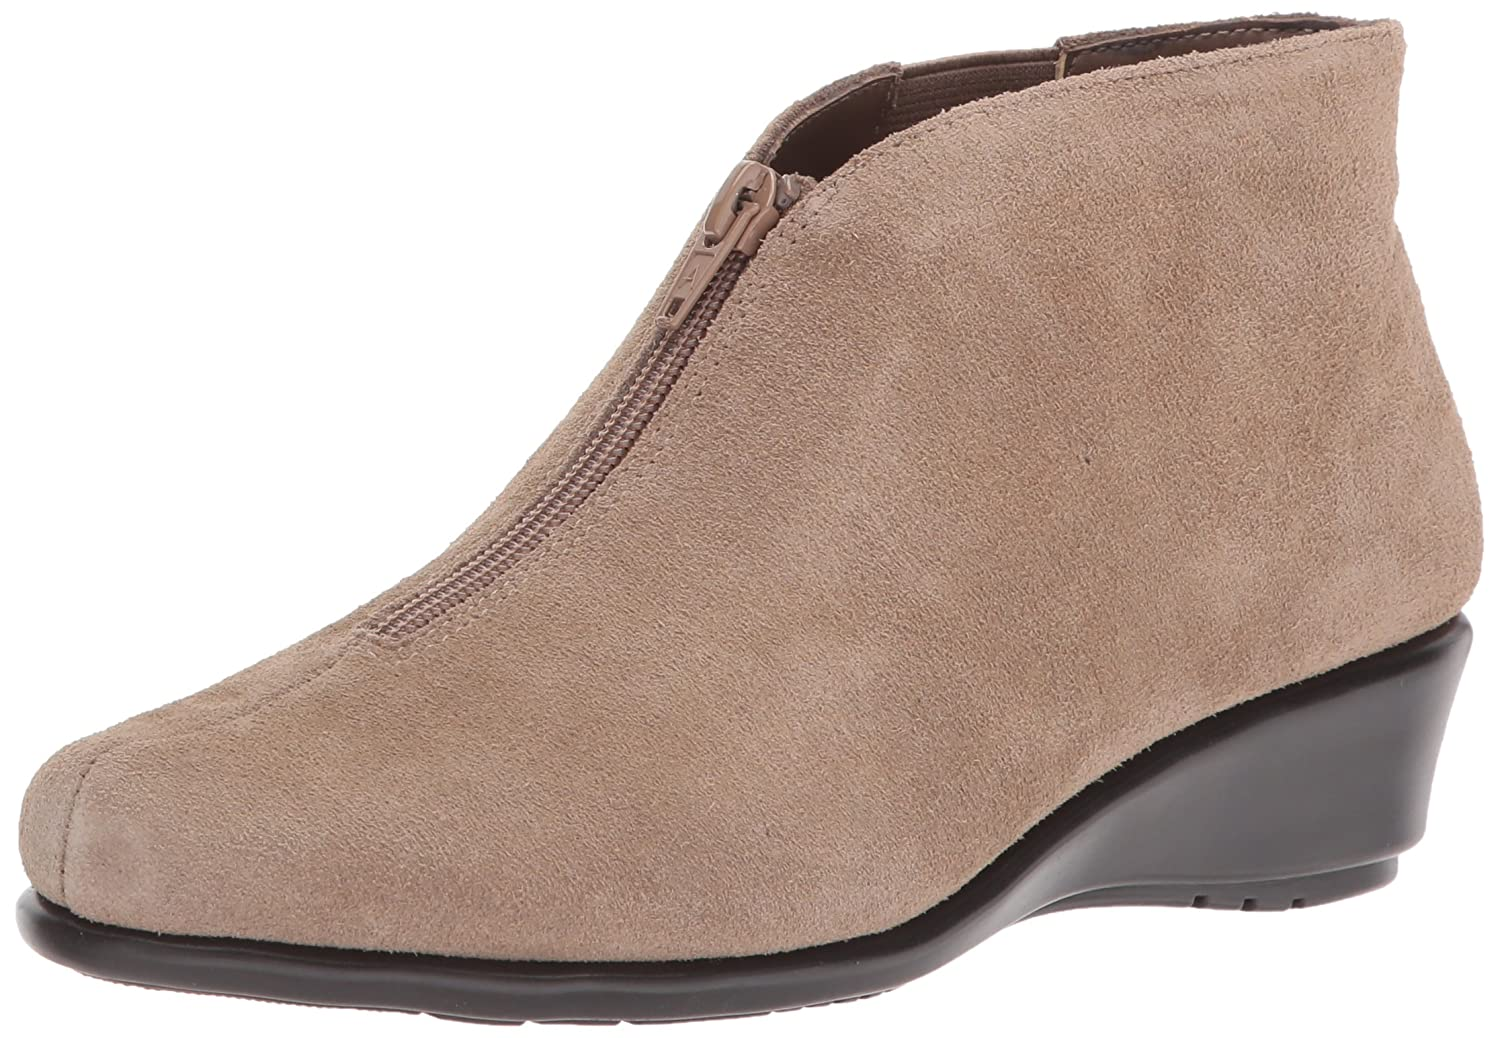 Aerosoles Women's Allowance Ankle Boot B06Y5ZKLFK 12 W US|Taupe Suede